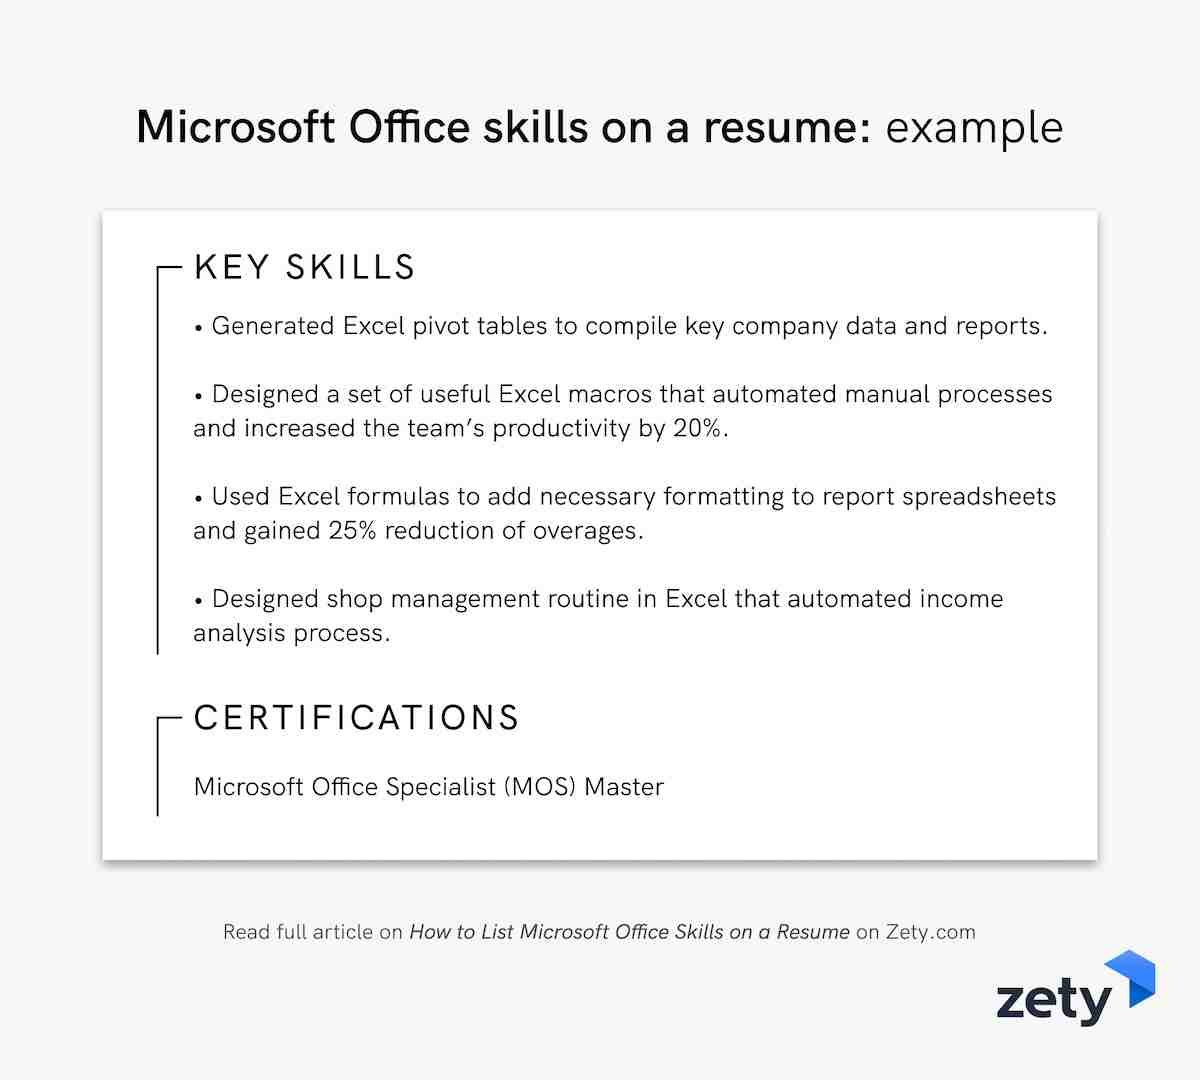 Microsoft Office skills on a resume: example